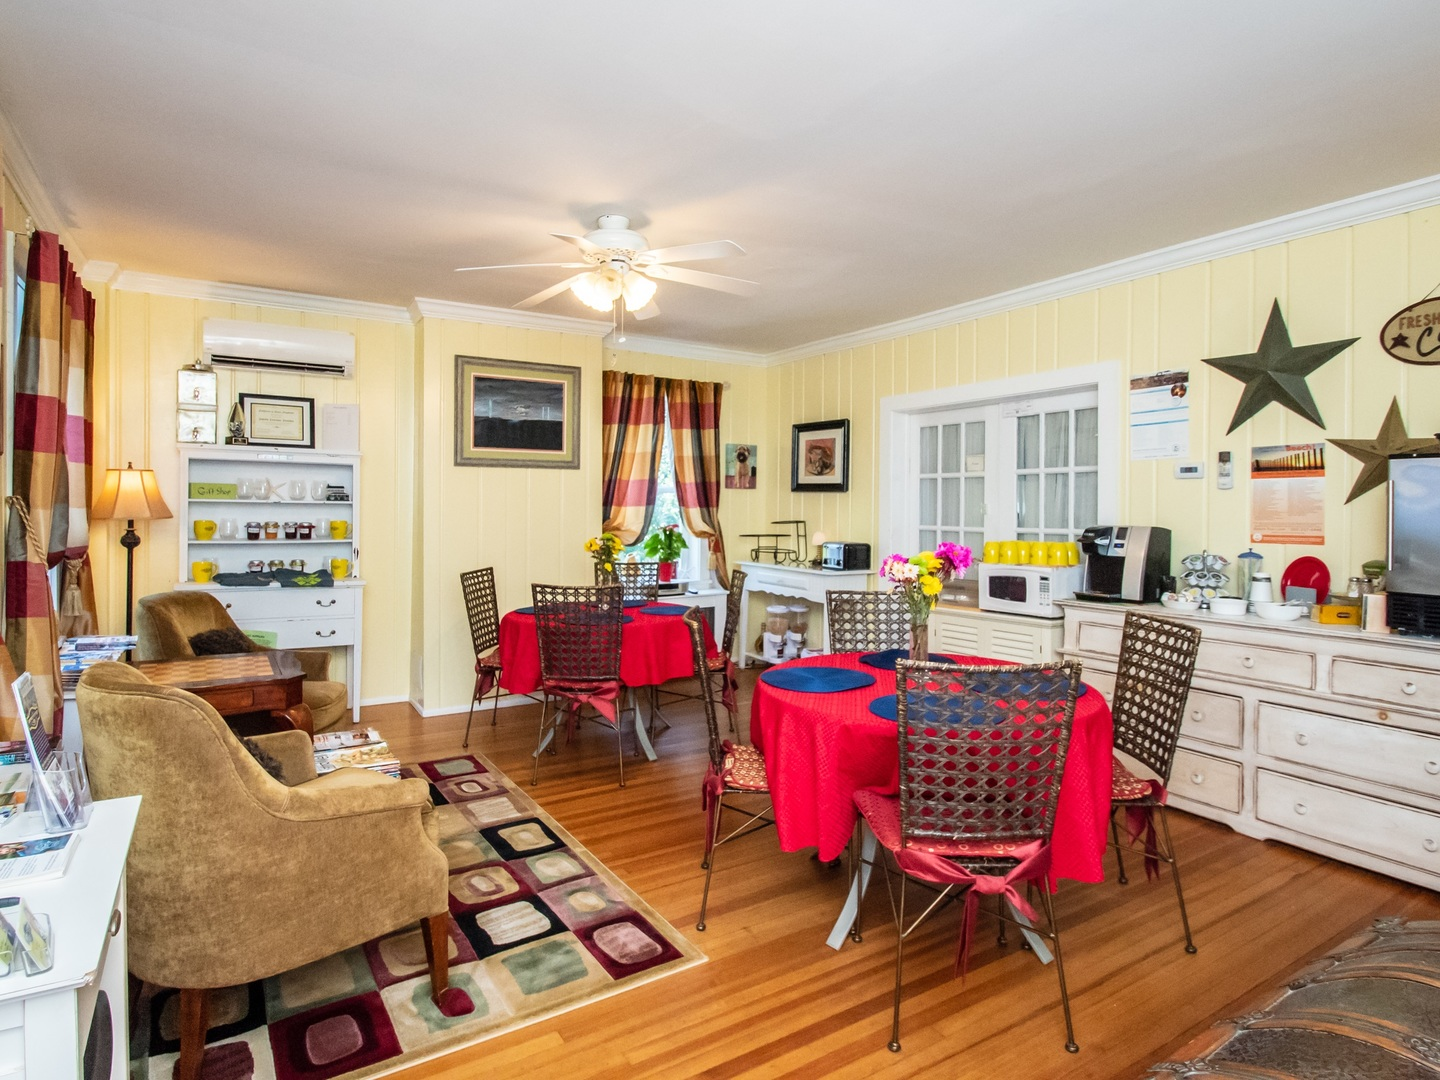 A living room filled with furniture and a table at The Homestead B&B at Rehoboth Beach.